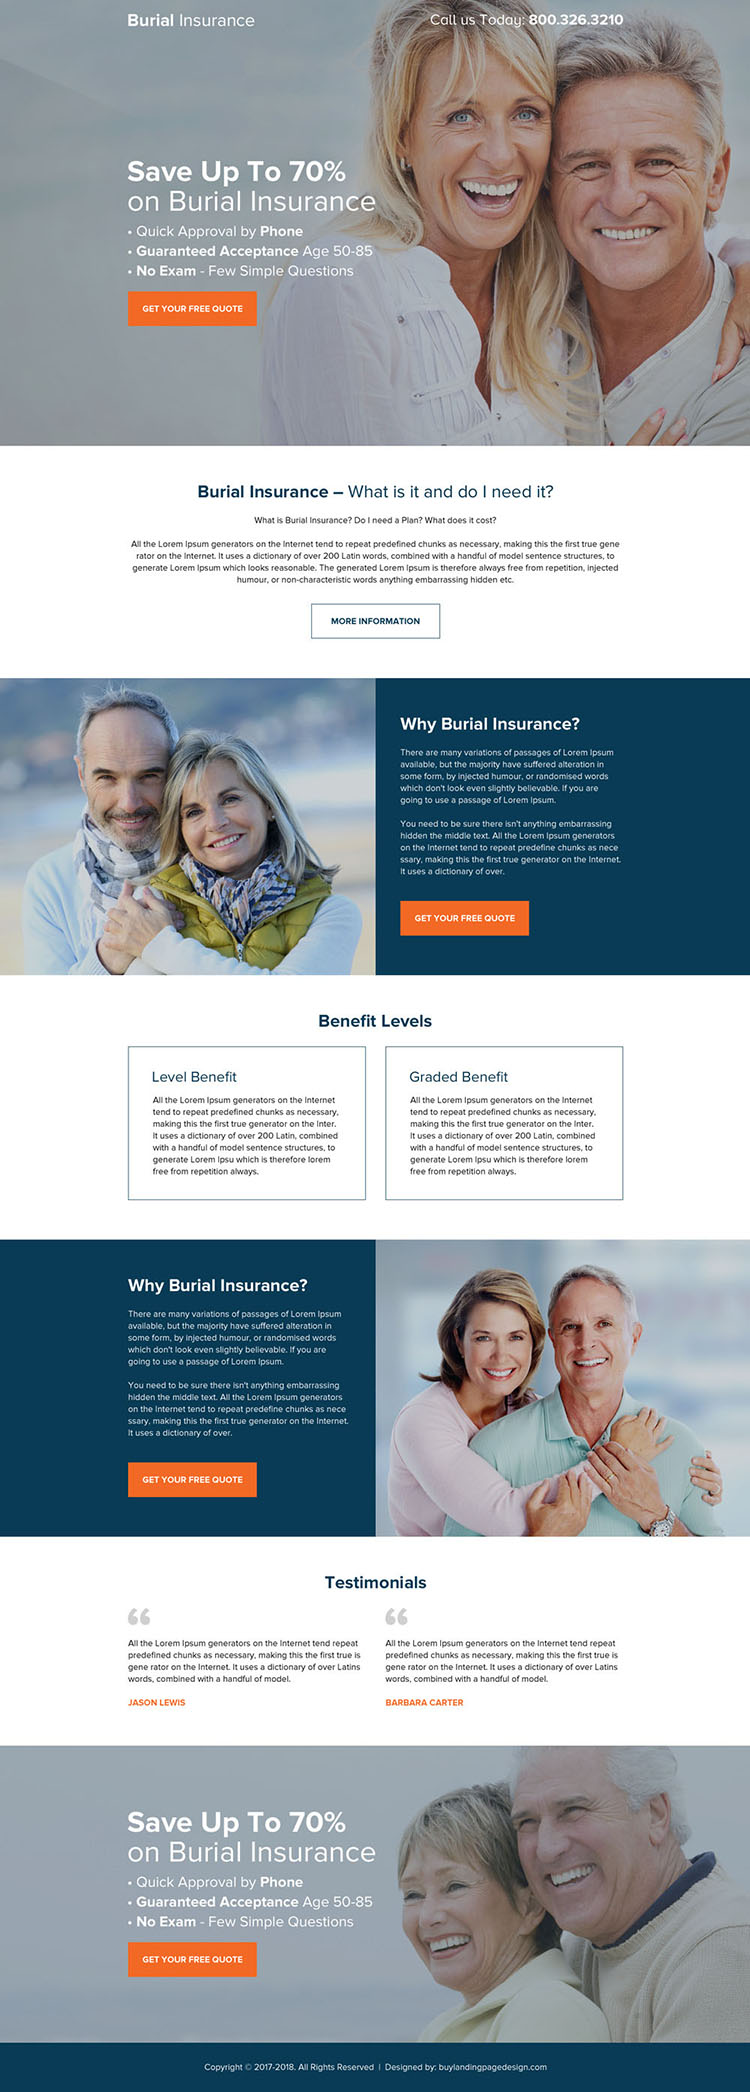 burial insurance quick approval landing page design